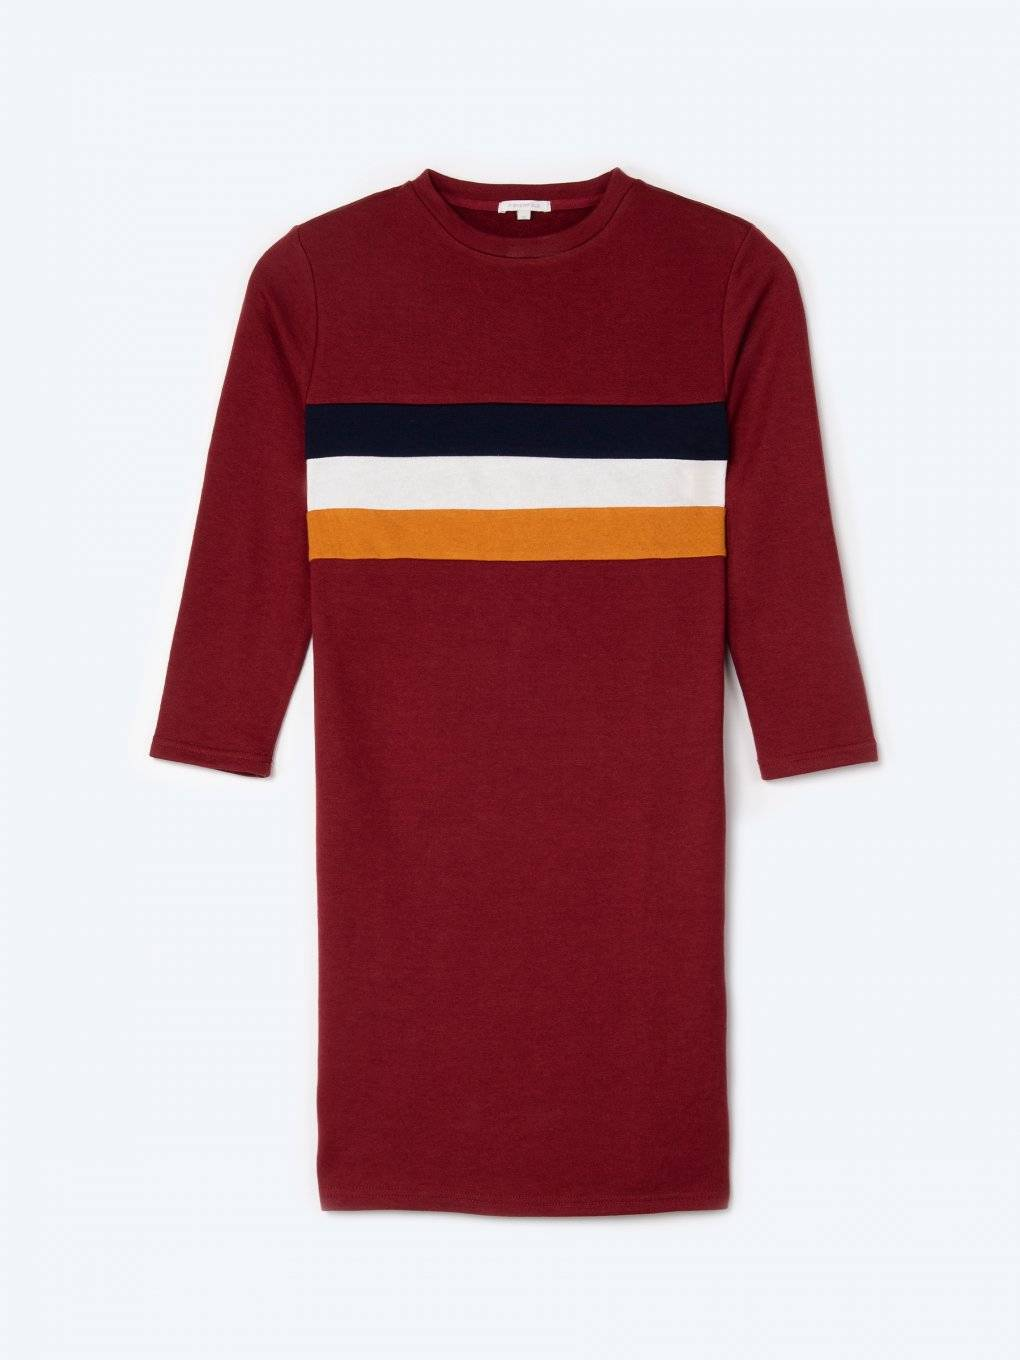 Sweatshirt dress with stripes